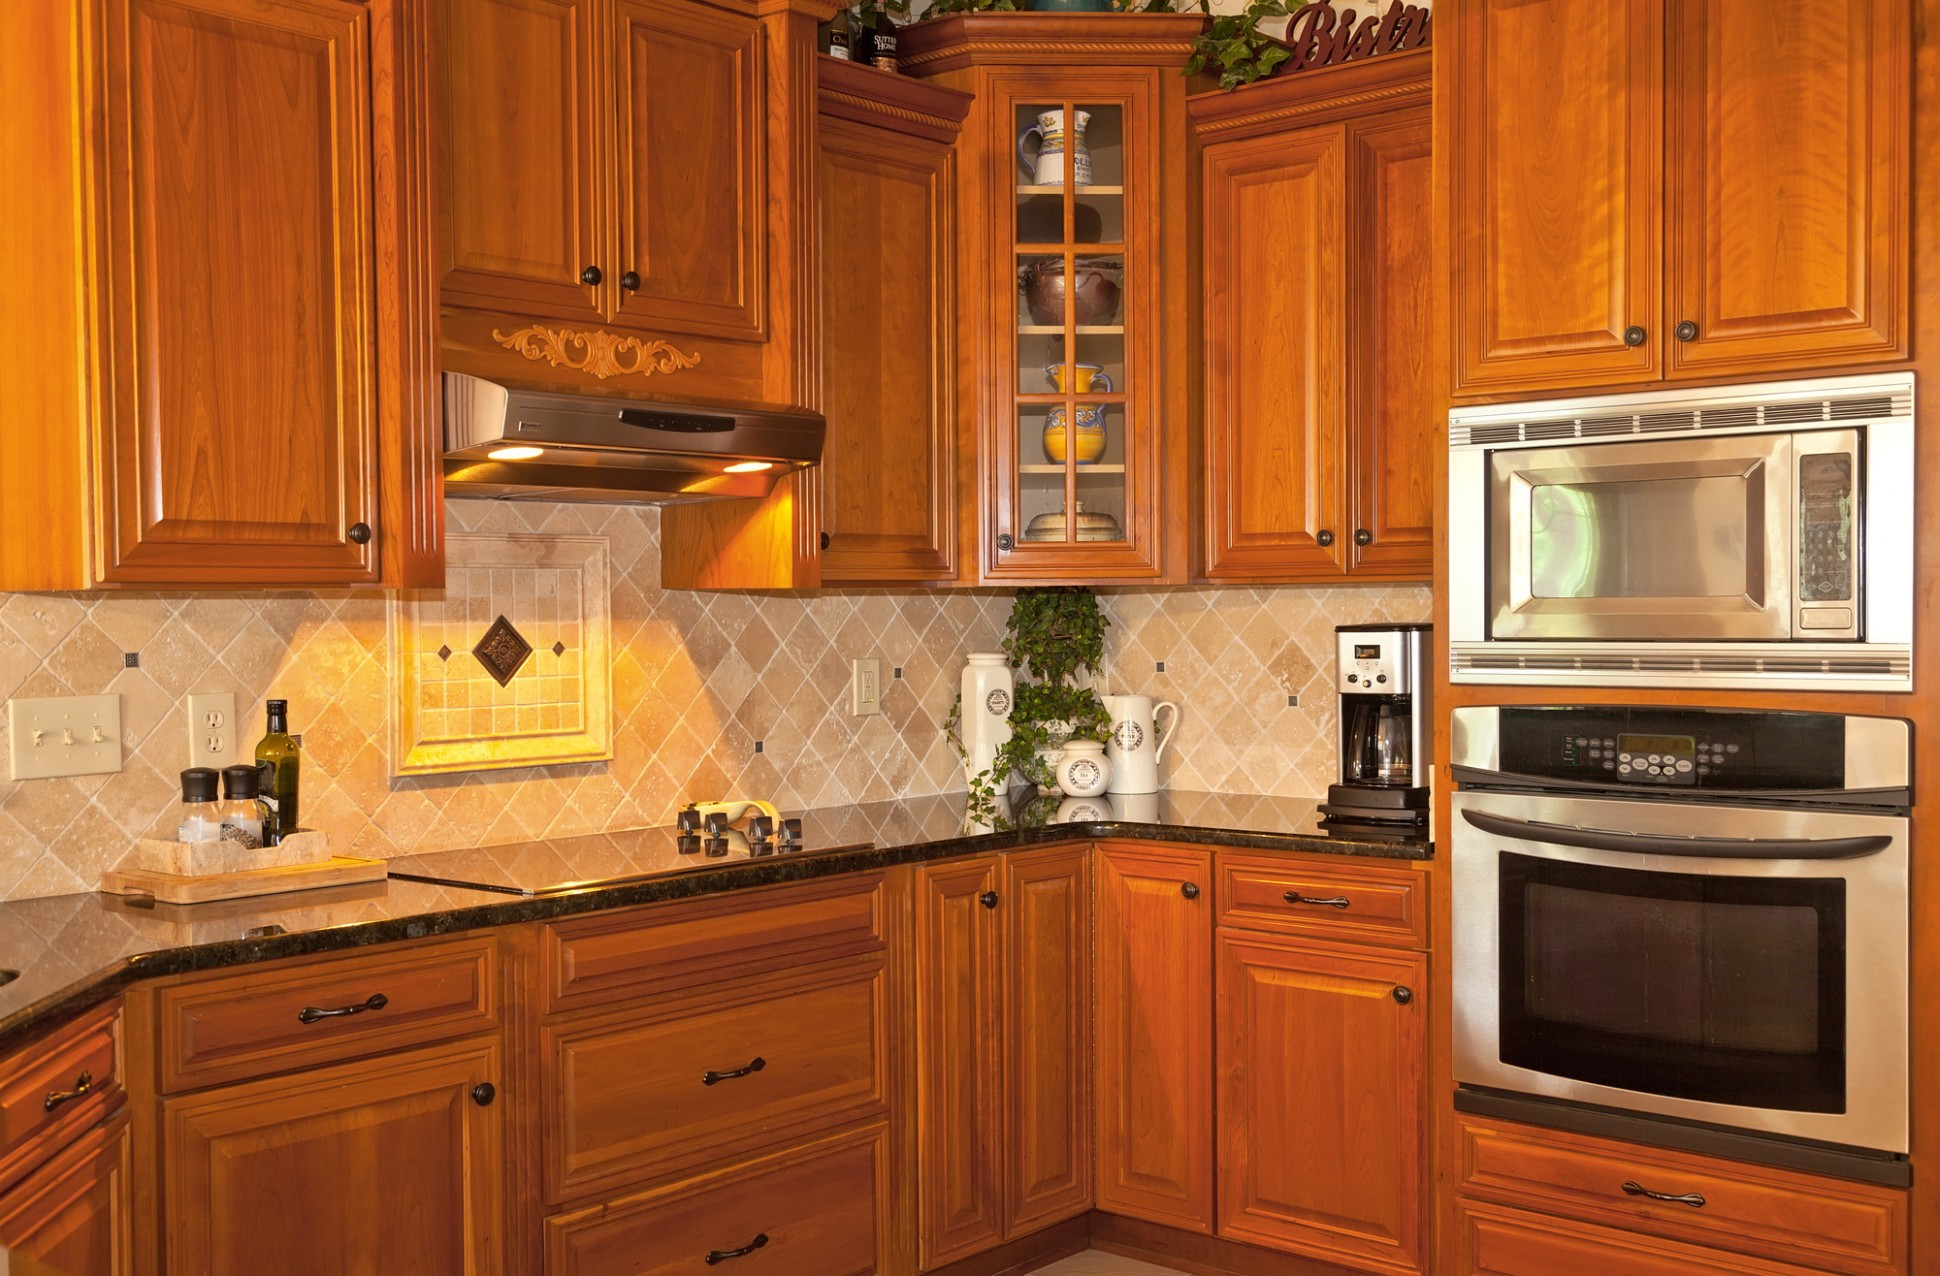 Kitchen Cabinet Dimensions: Your Guide to the Standard Sizes - Kitchen Cabinets Upper Size